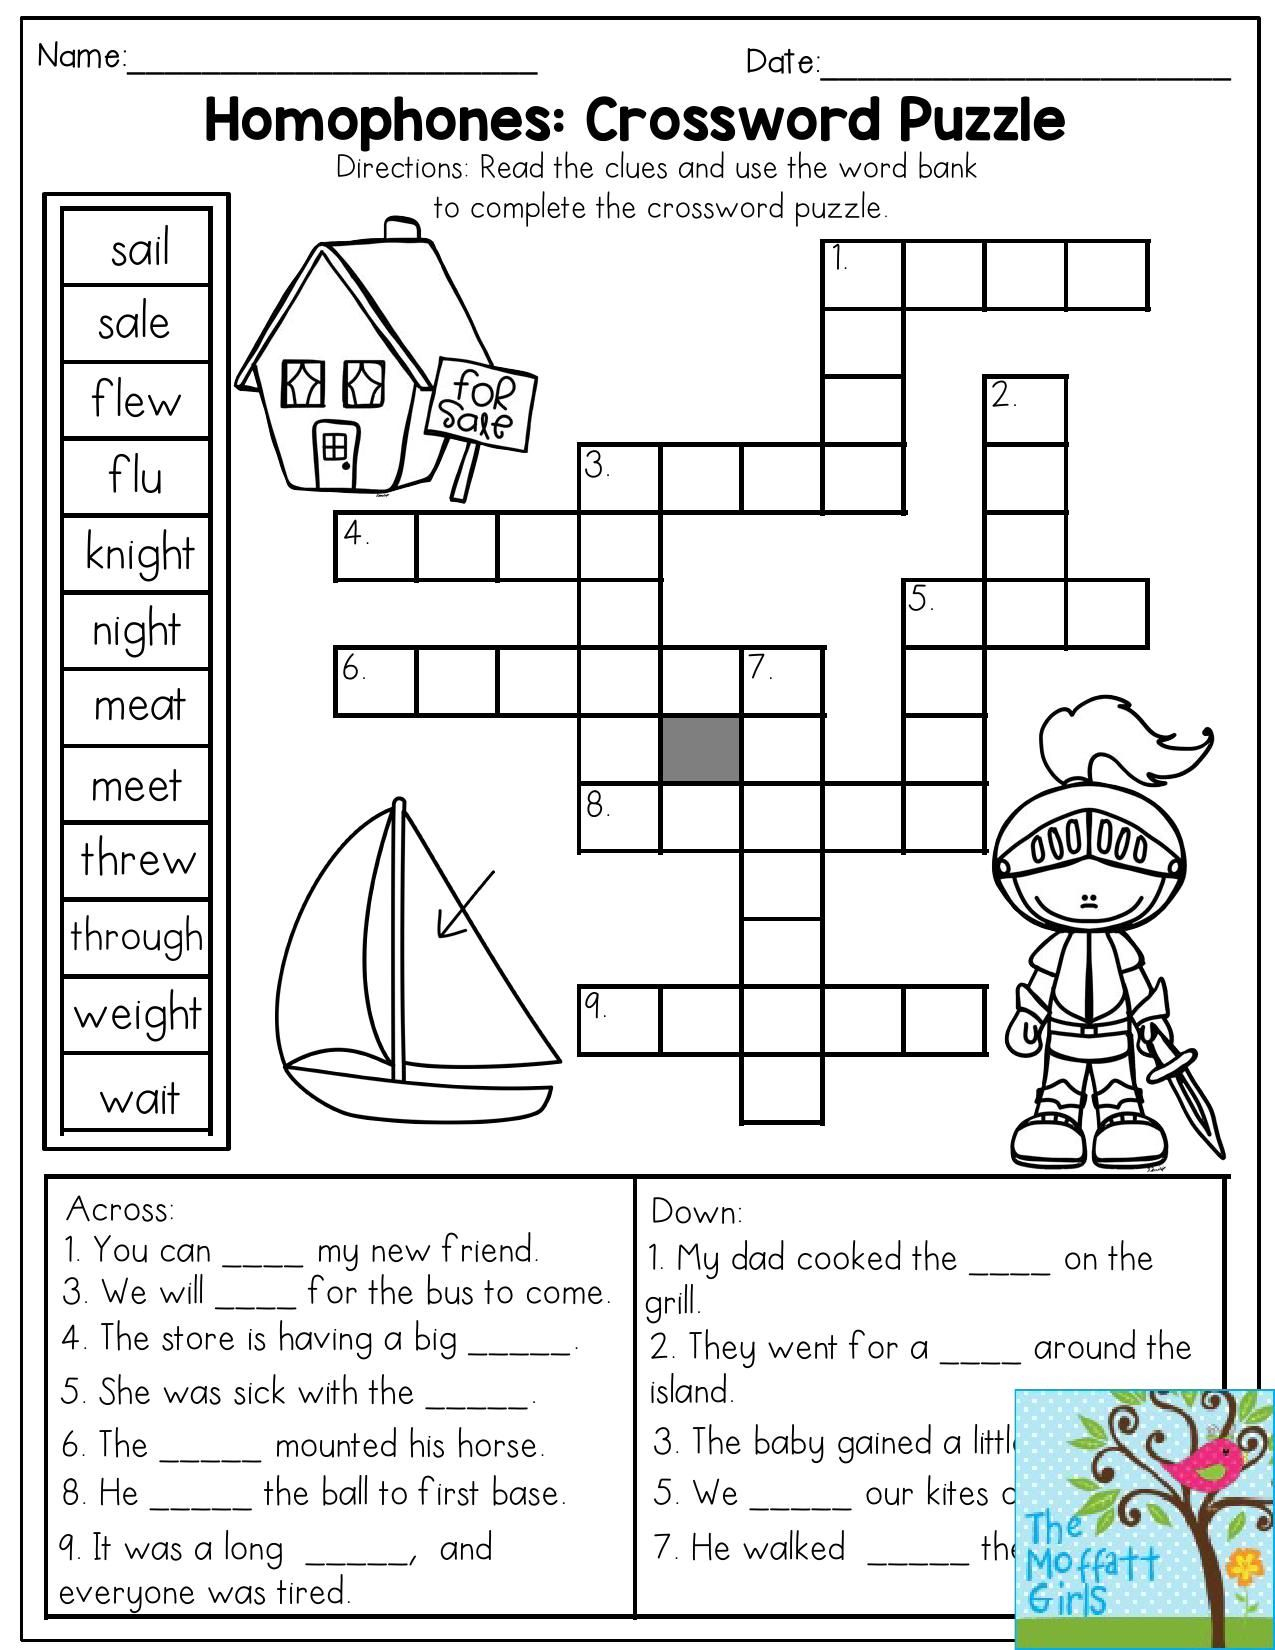 Homophones: Crossword Puzzle- Read The Clues And Use The Word Bank - Printable Crossword Puzzle For 4Th Graders